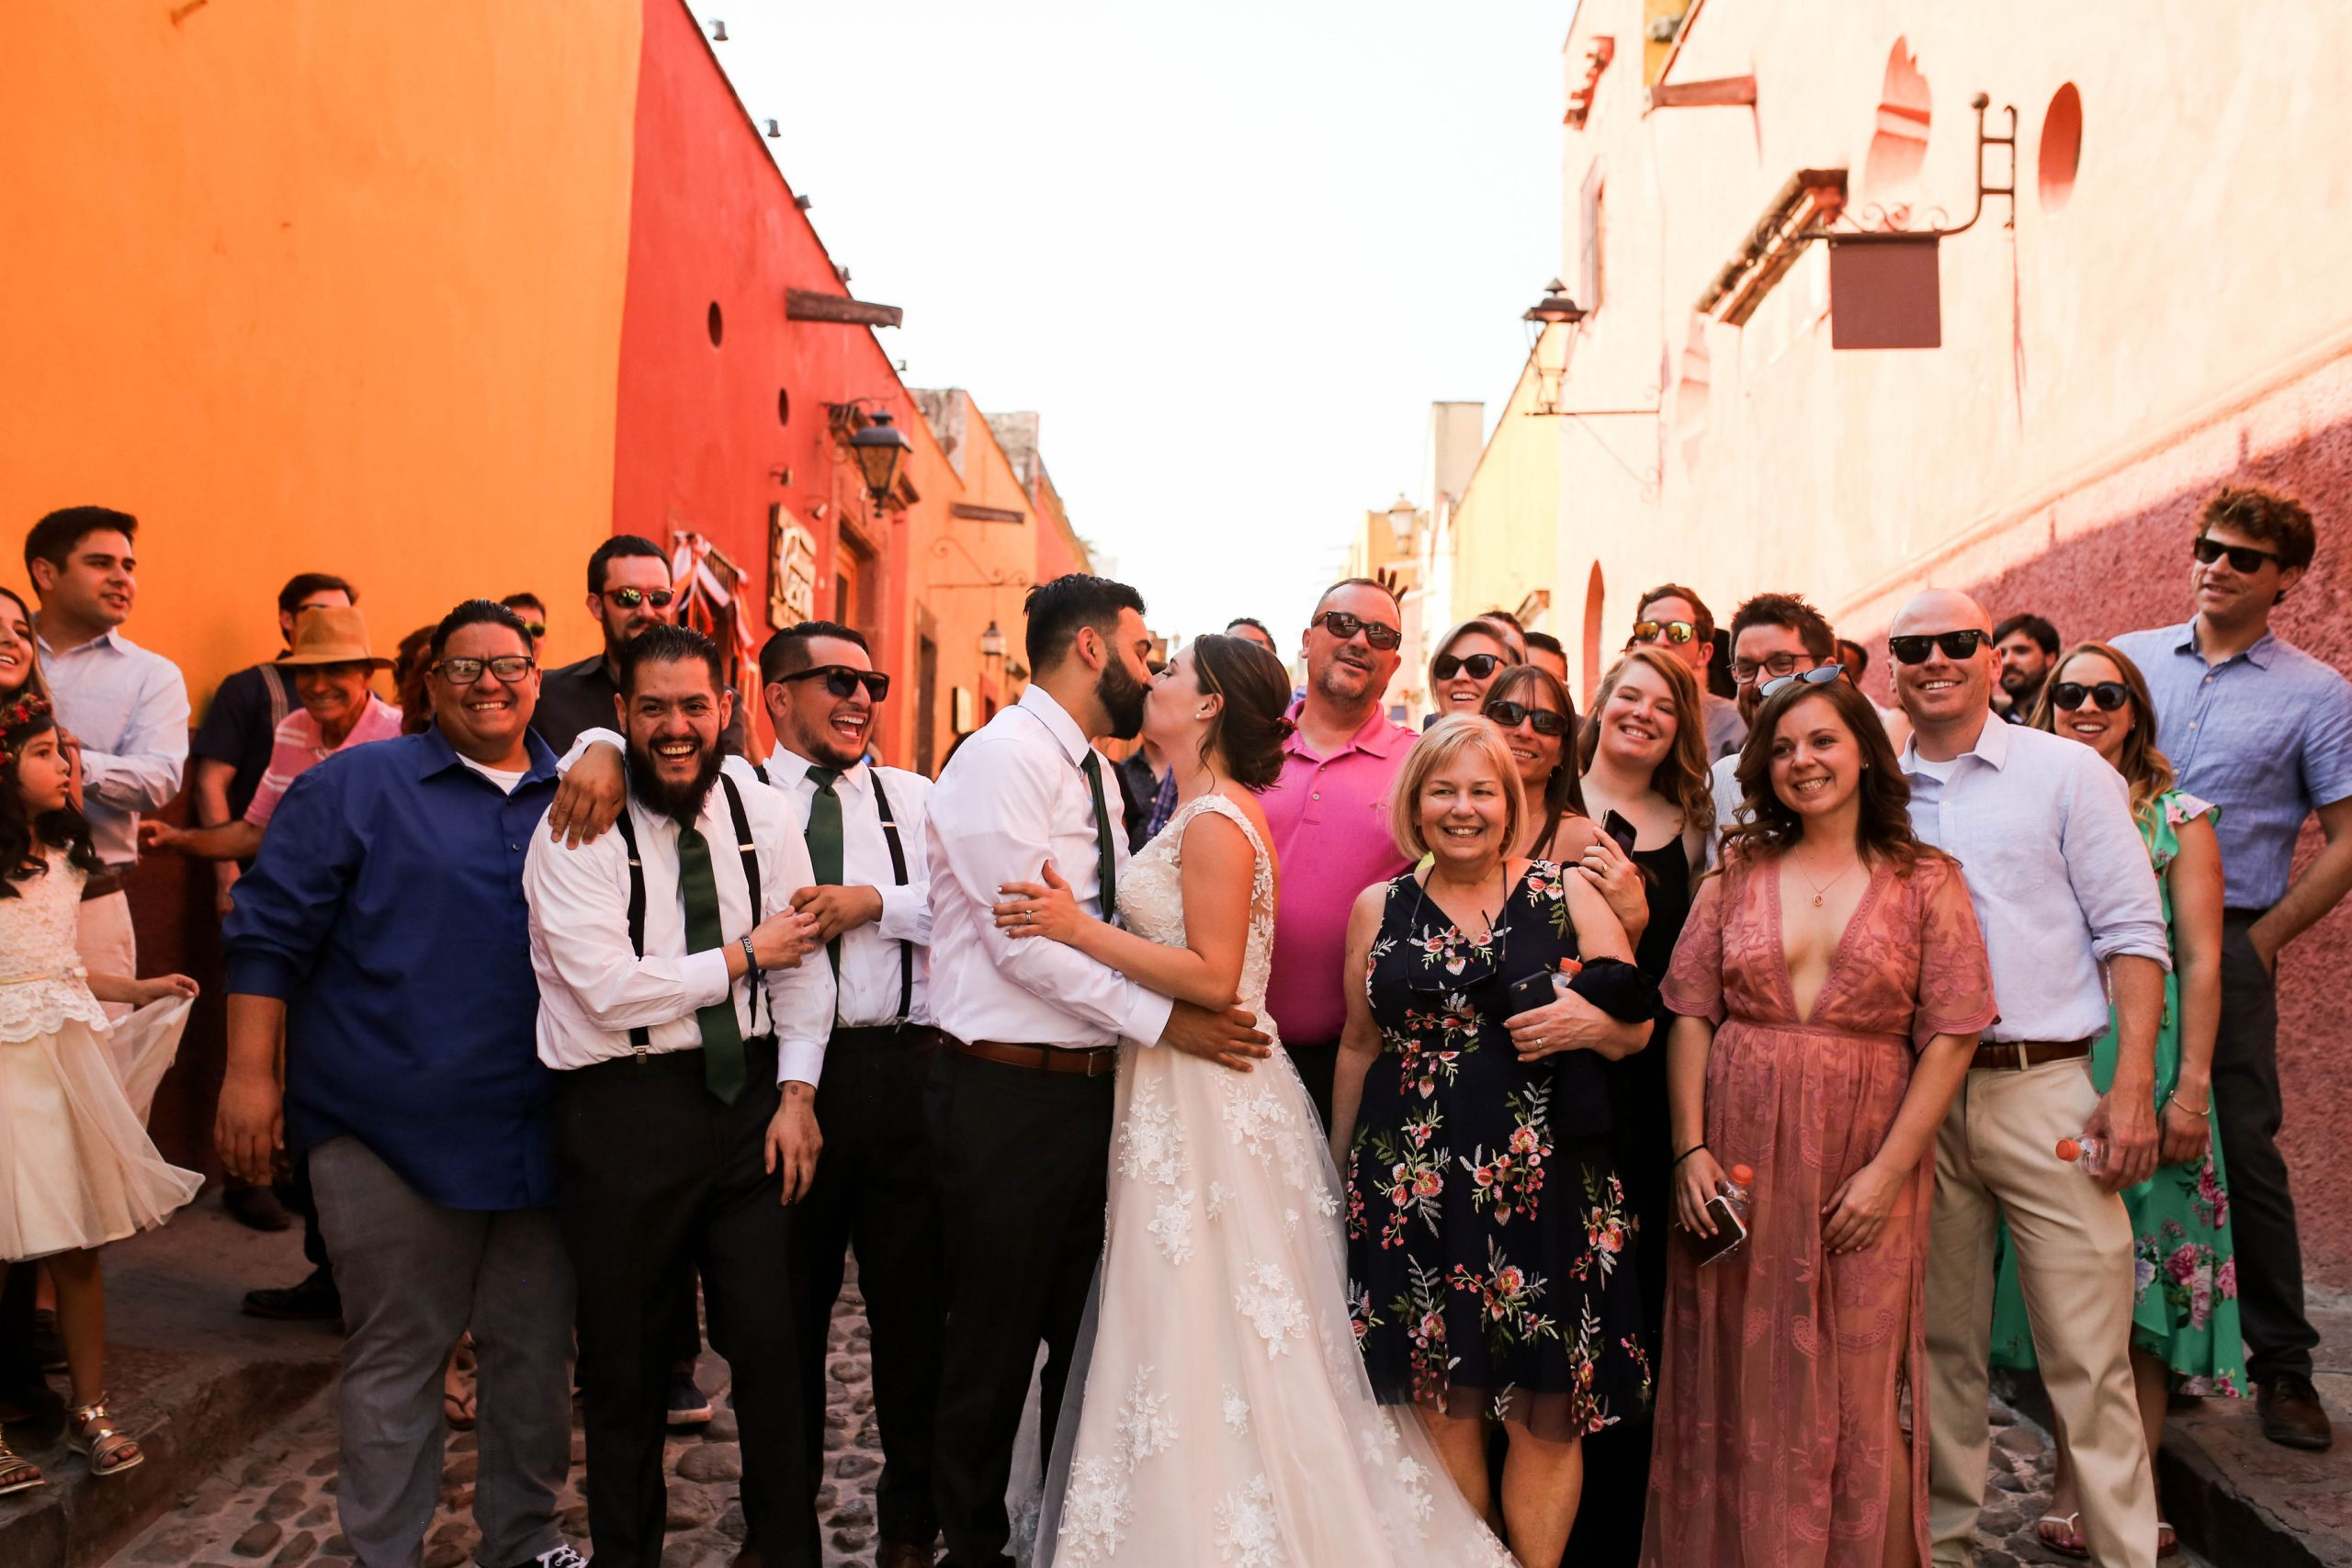 Groom Kissing Real Bride in Front of Wedding Party at Multicultural Wedding